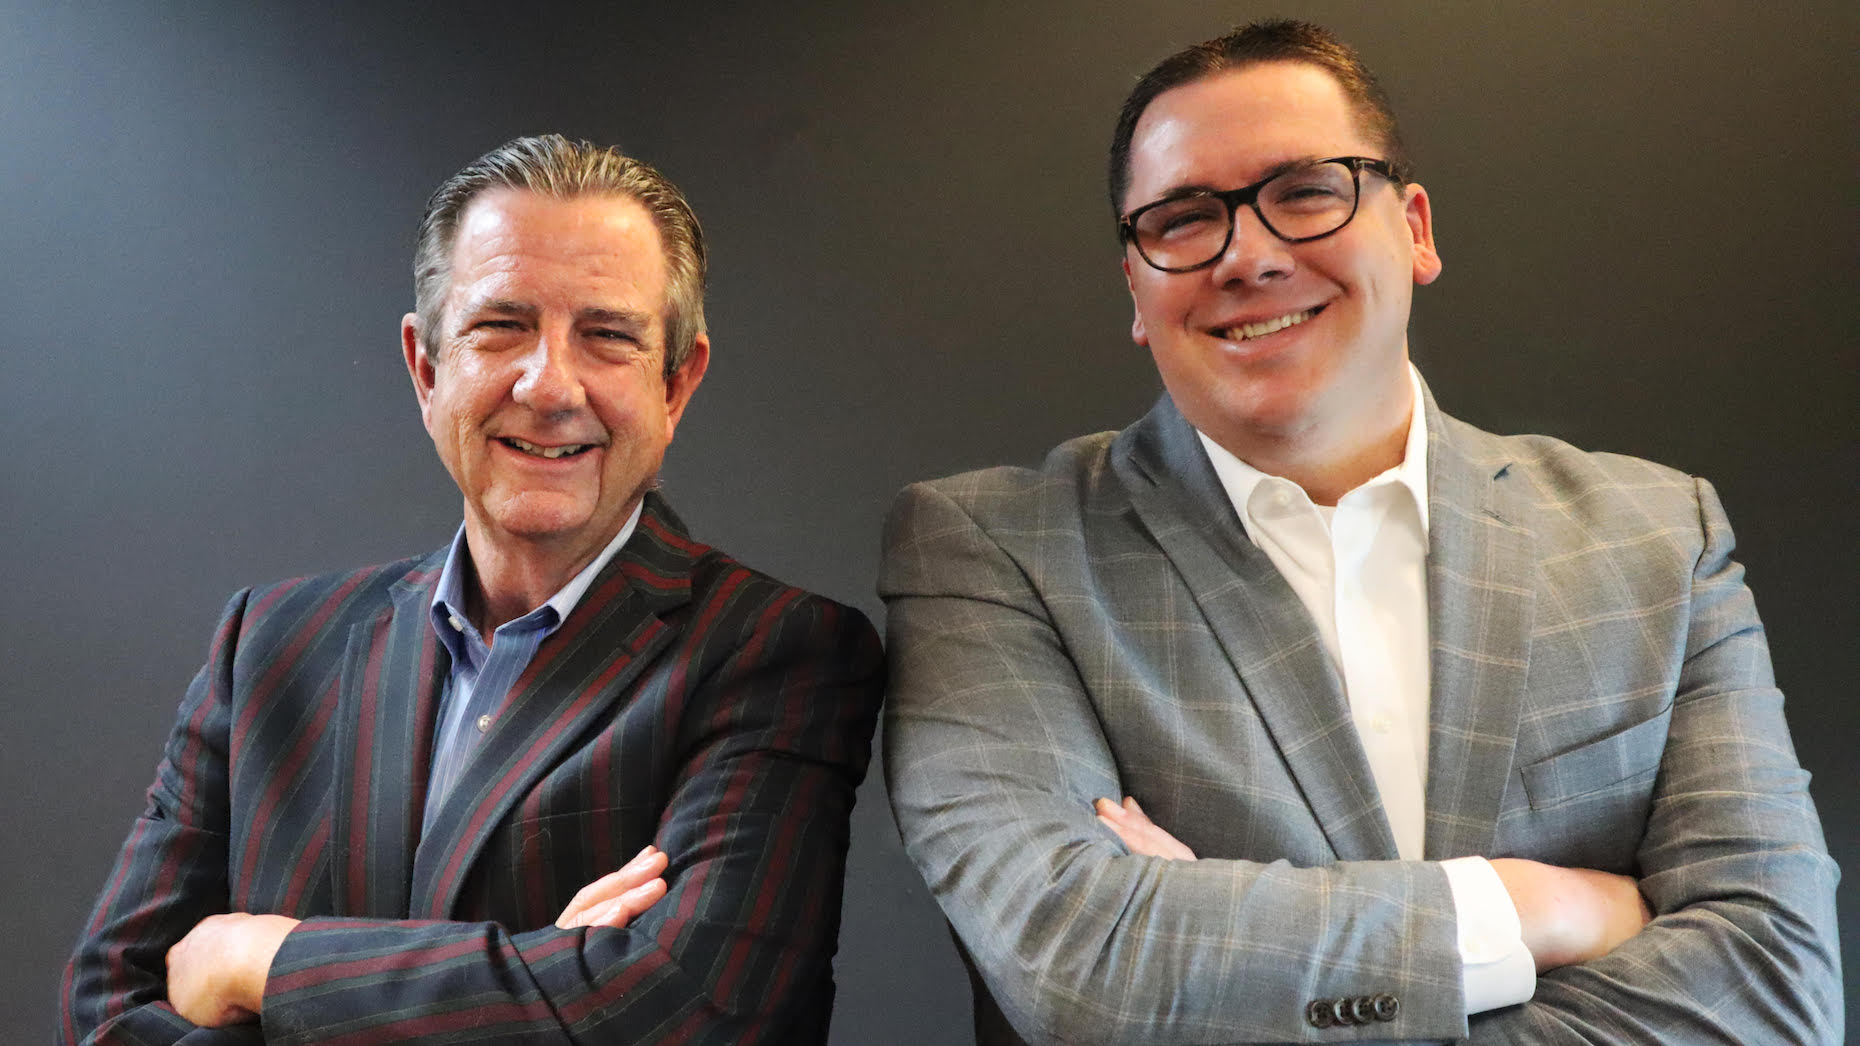 Former Real Trends executives launch new consulting firm